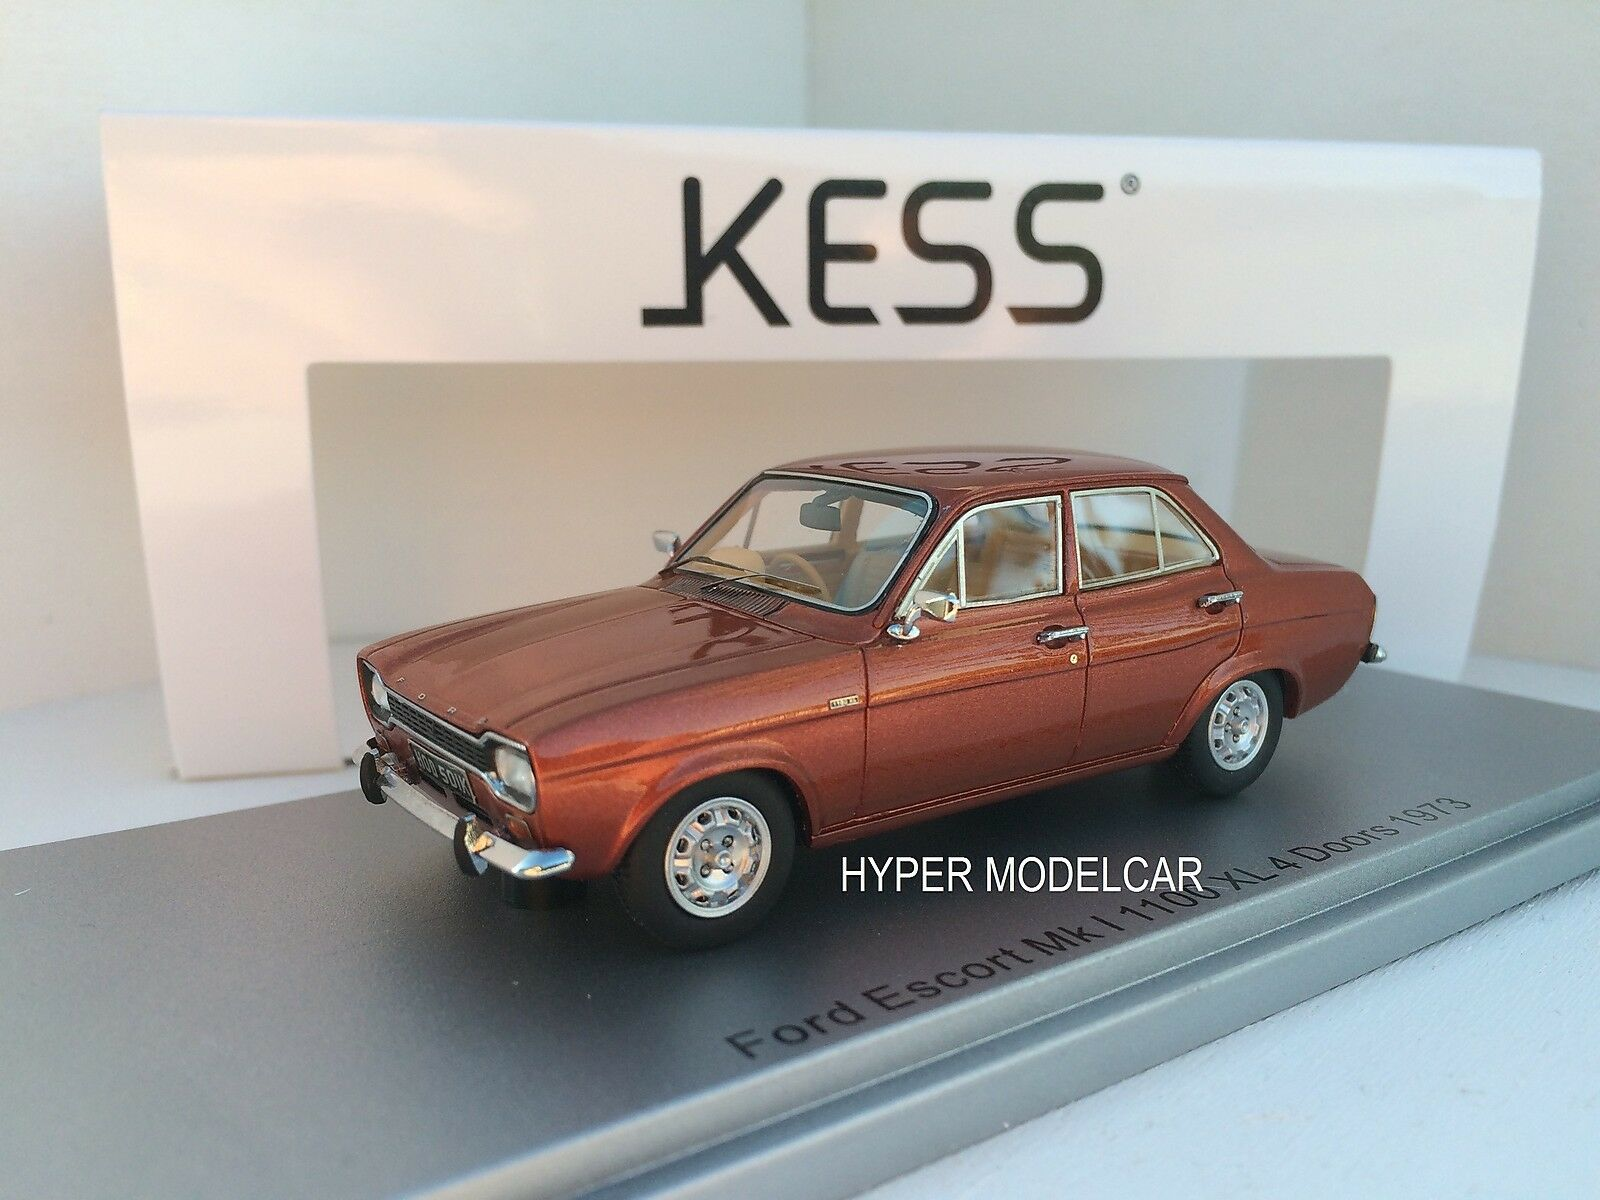 KESS MODEL 1/43 Ford Escort MKI 1100 XL Rhd 4-door 1973  Bronze Met.  KE43015011 | La Réputation D'abord